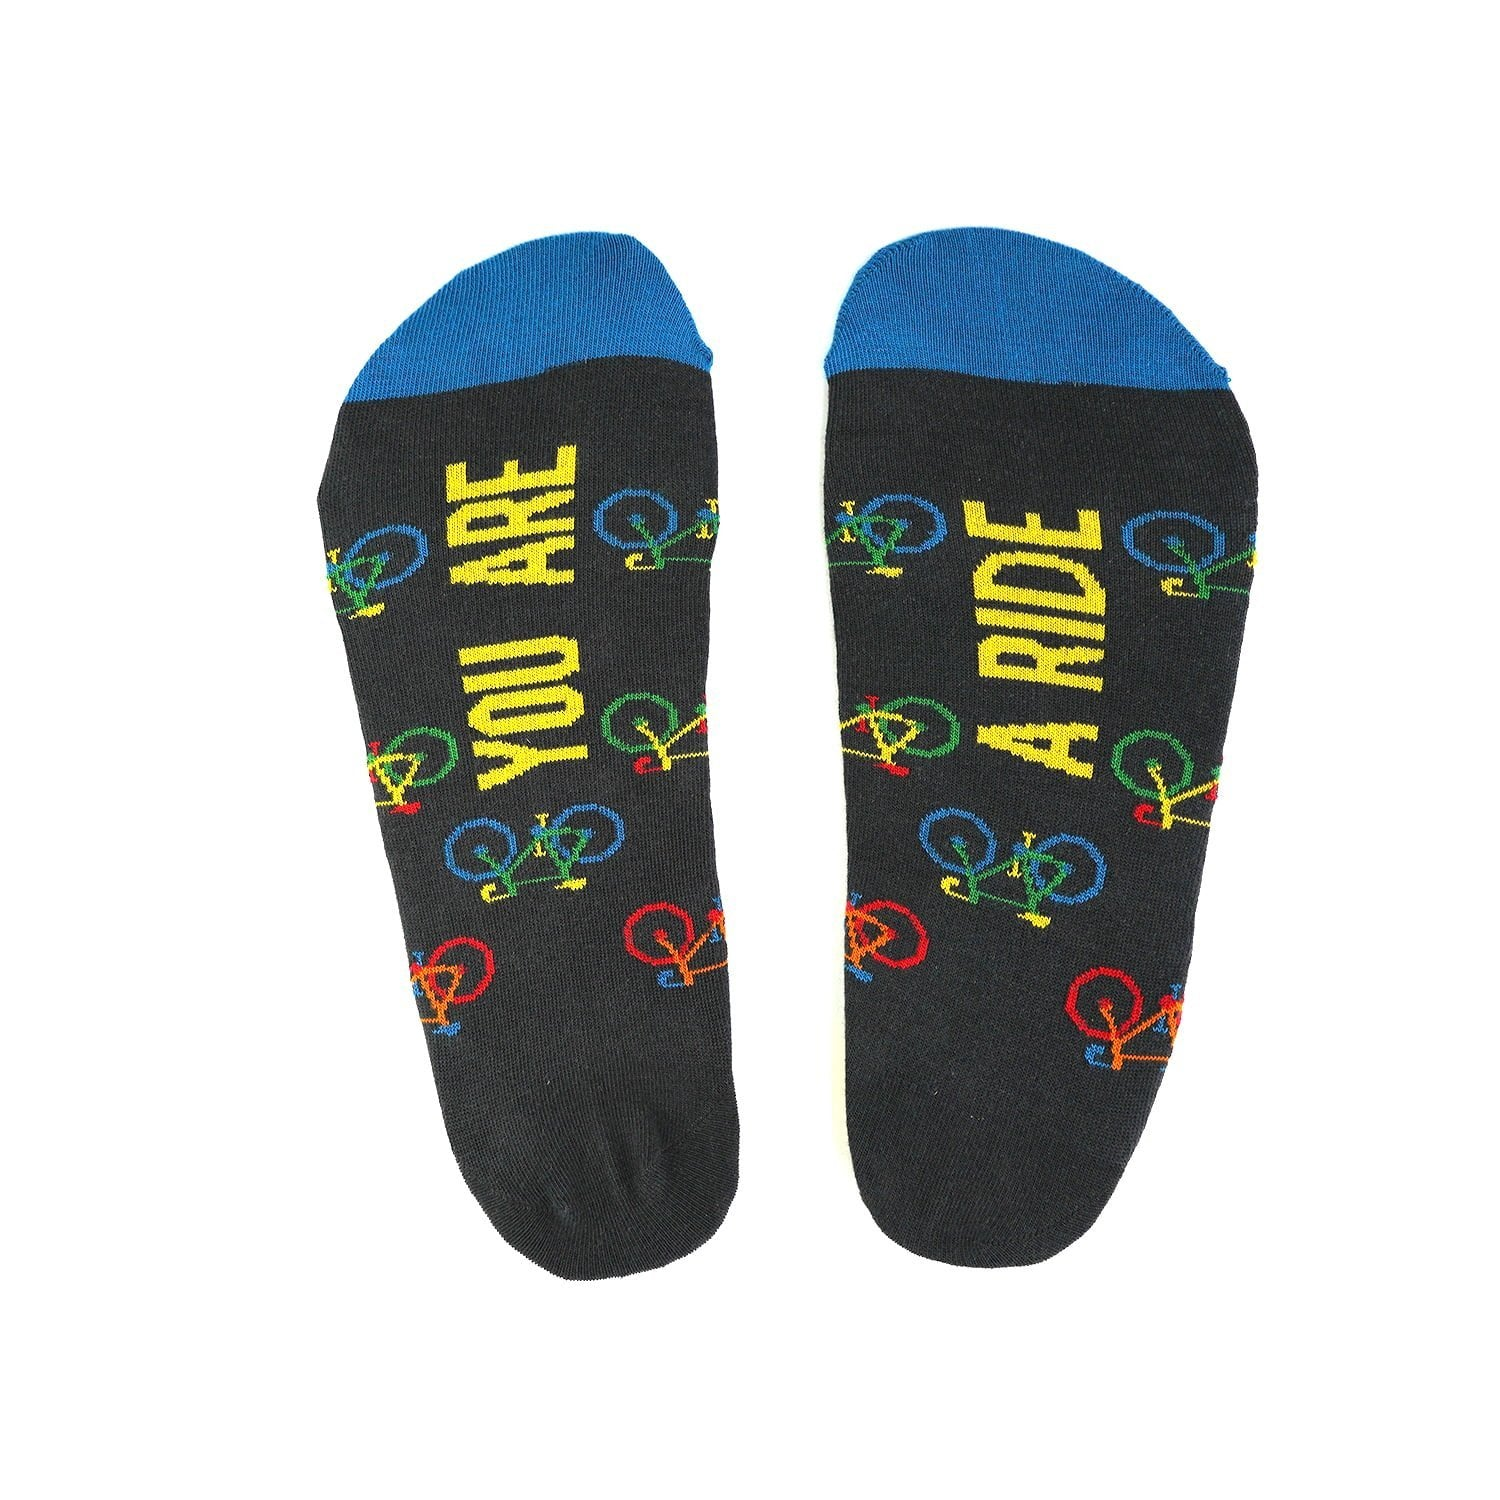 Socks - You Are A Ride - Ankle Socks